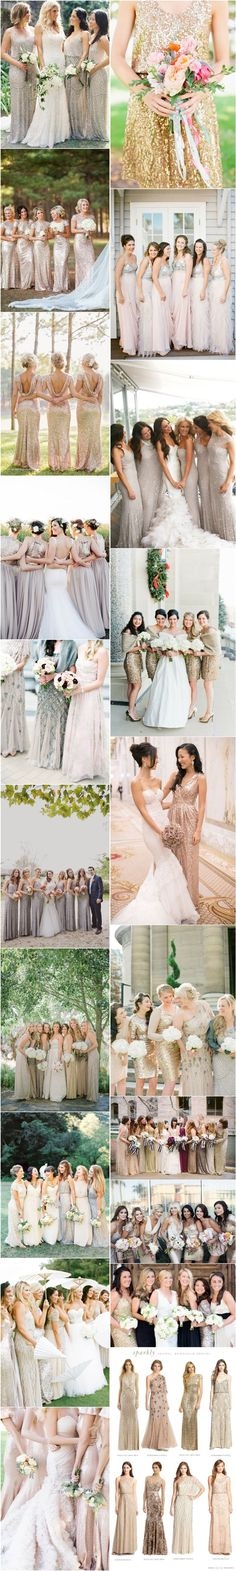 2015 Wedding Trends – Sequined and Metallic Bridesmaid Dresses | http://www.deerpearlflowers.com/2015-wedding-trends-sequined-metallic-bridesmaid-dresses/